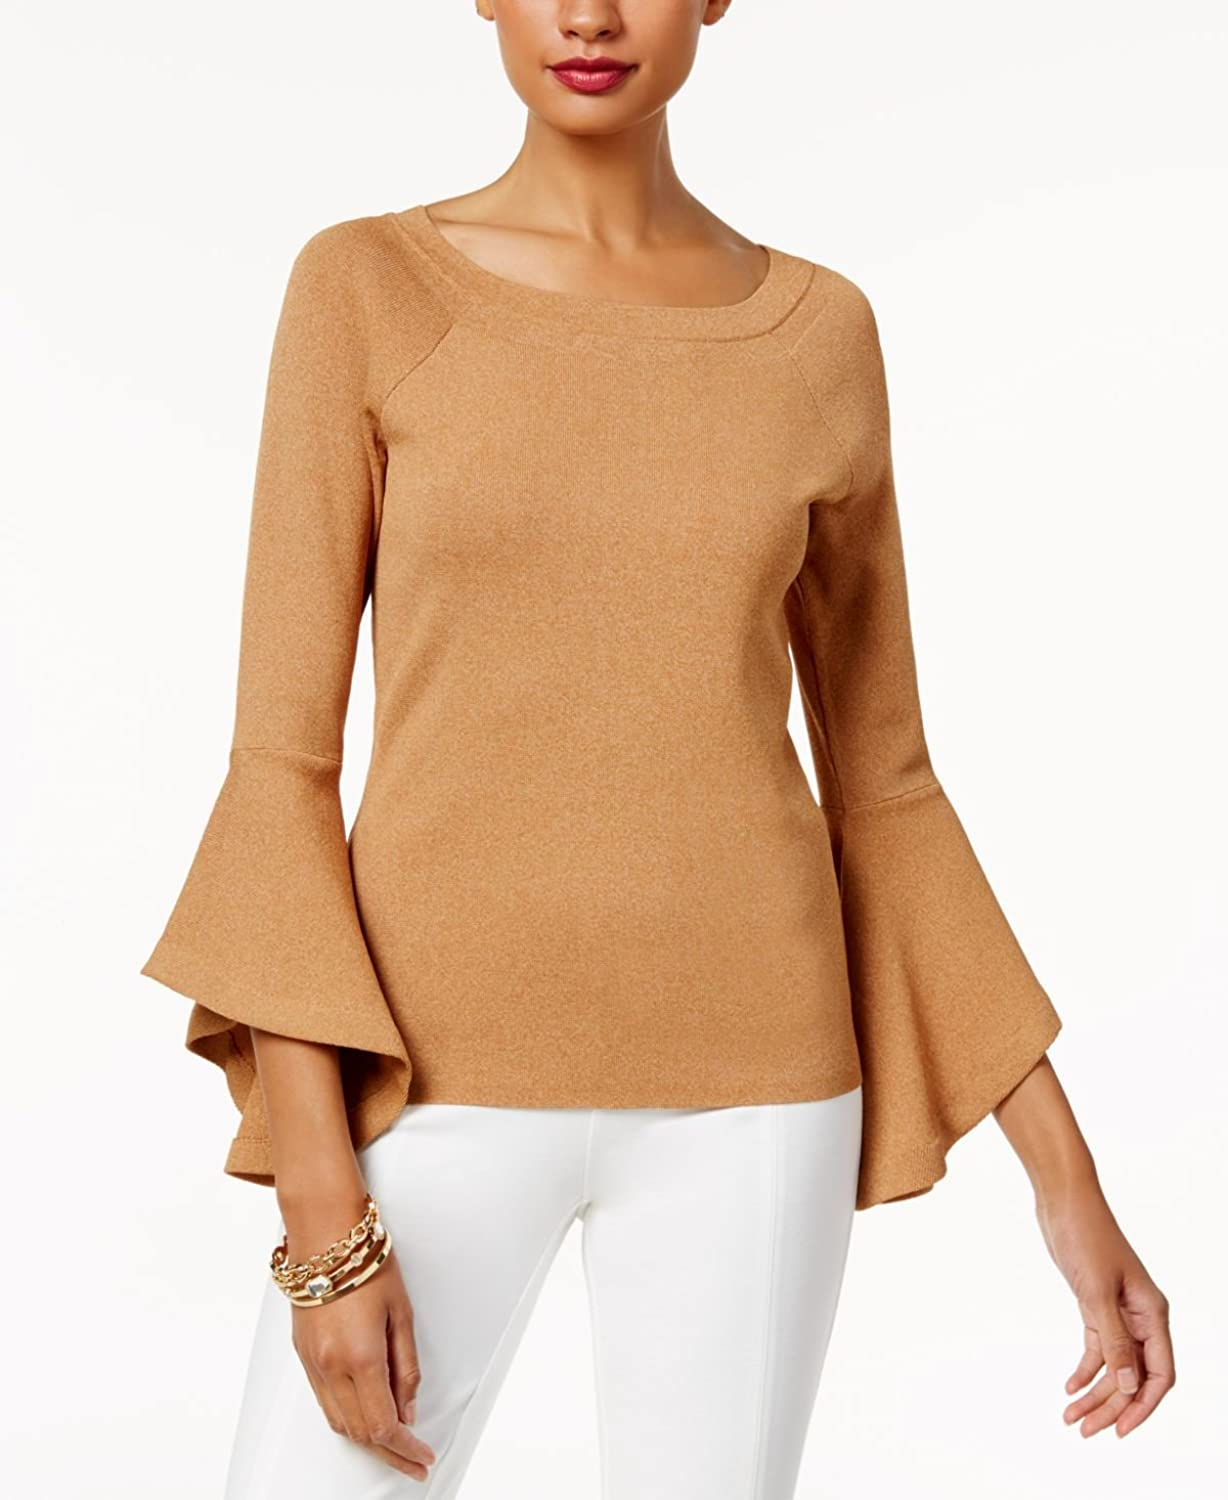 Inc Womens Ribbed Bell Sleeves Sweater Tan XL